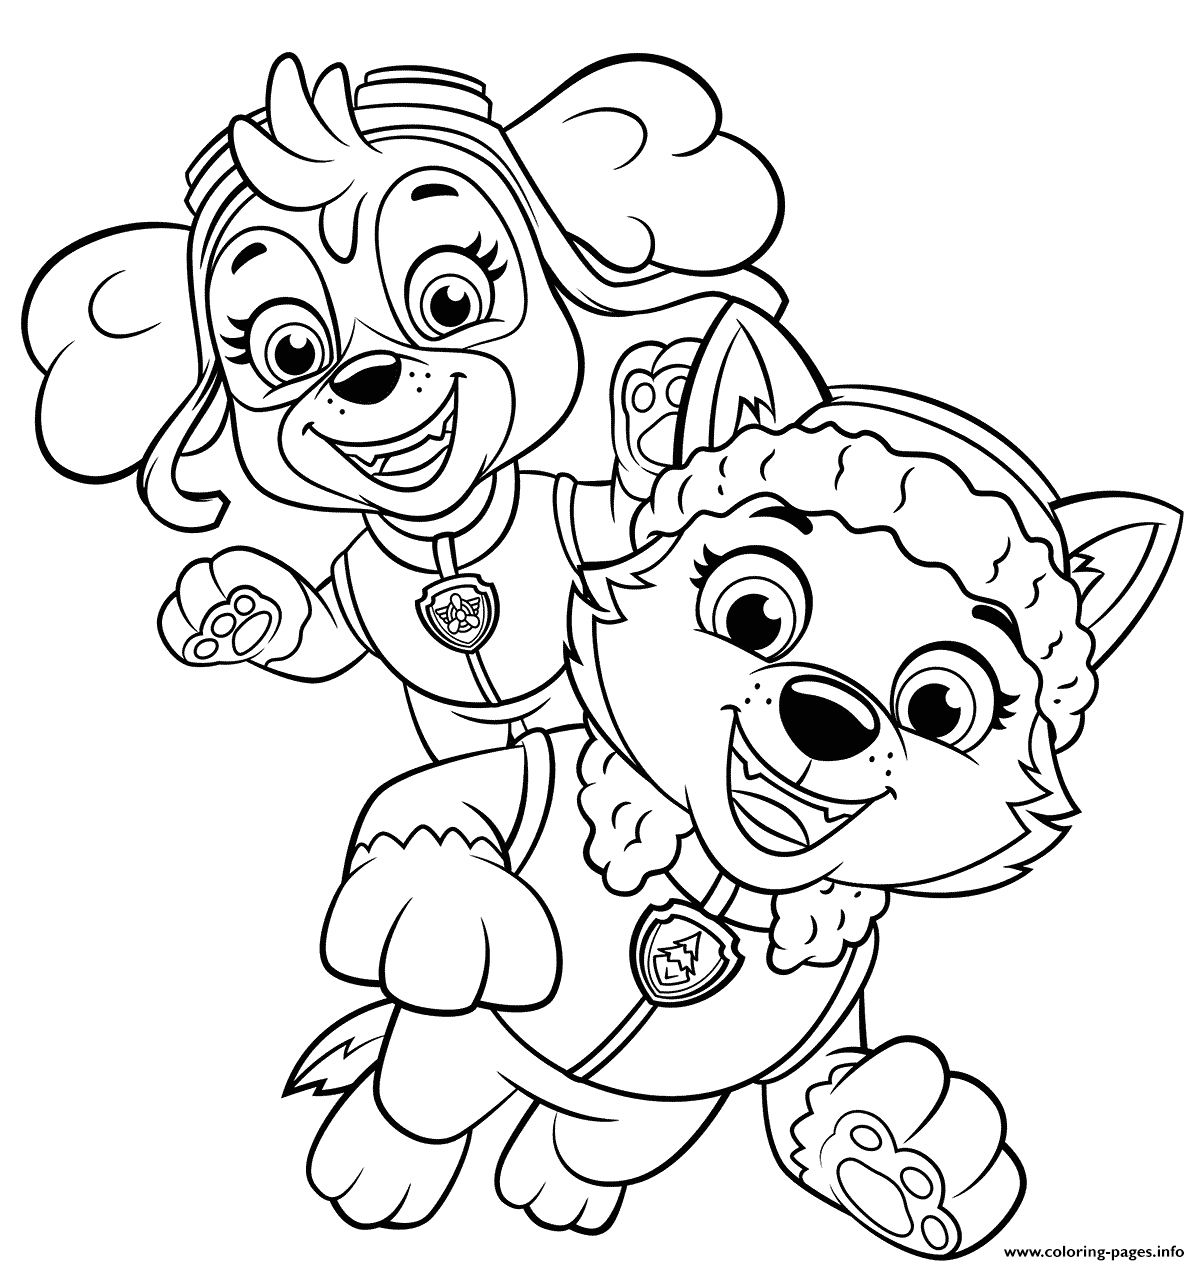 skye and everest printable coloring pages book